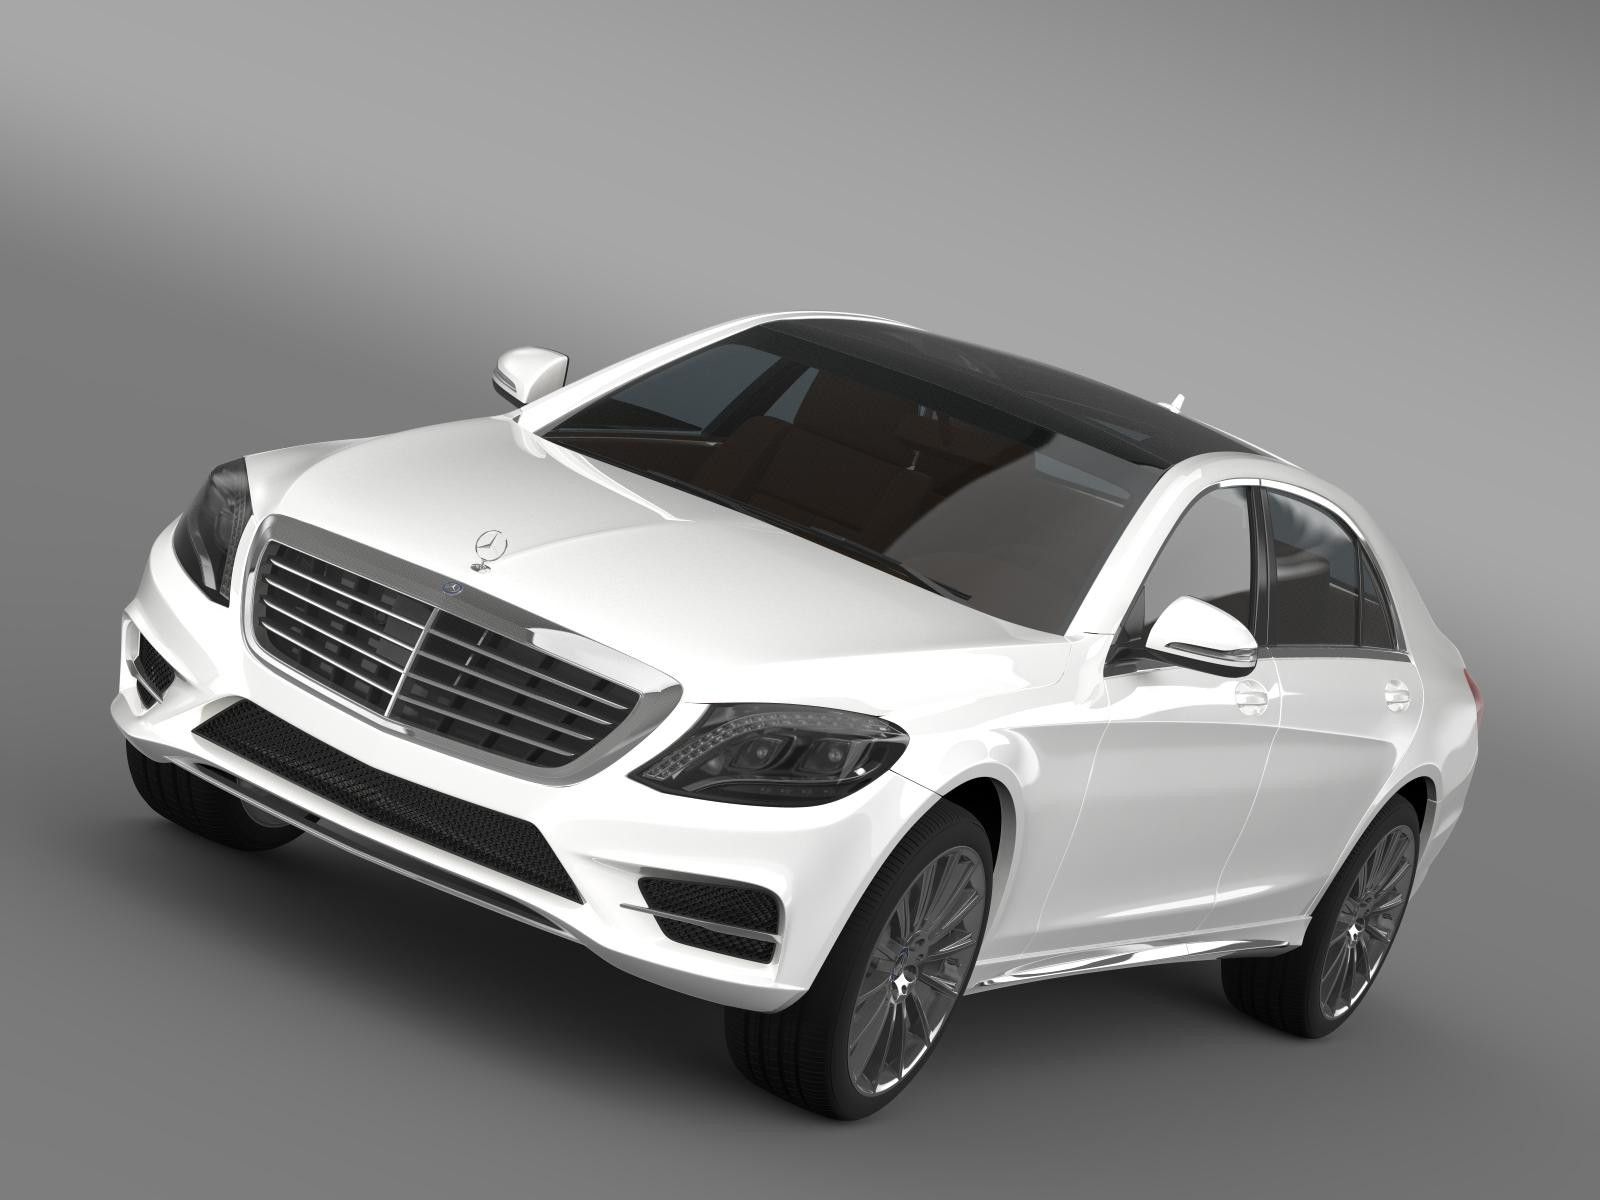 amg mercedes benz s 350 bluetec w222 2013 3d model buy amg mercedes benz s 350 bluetec w222. Black Bedroom Furniture Sets. Home Design Ideas